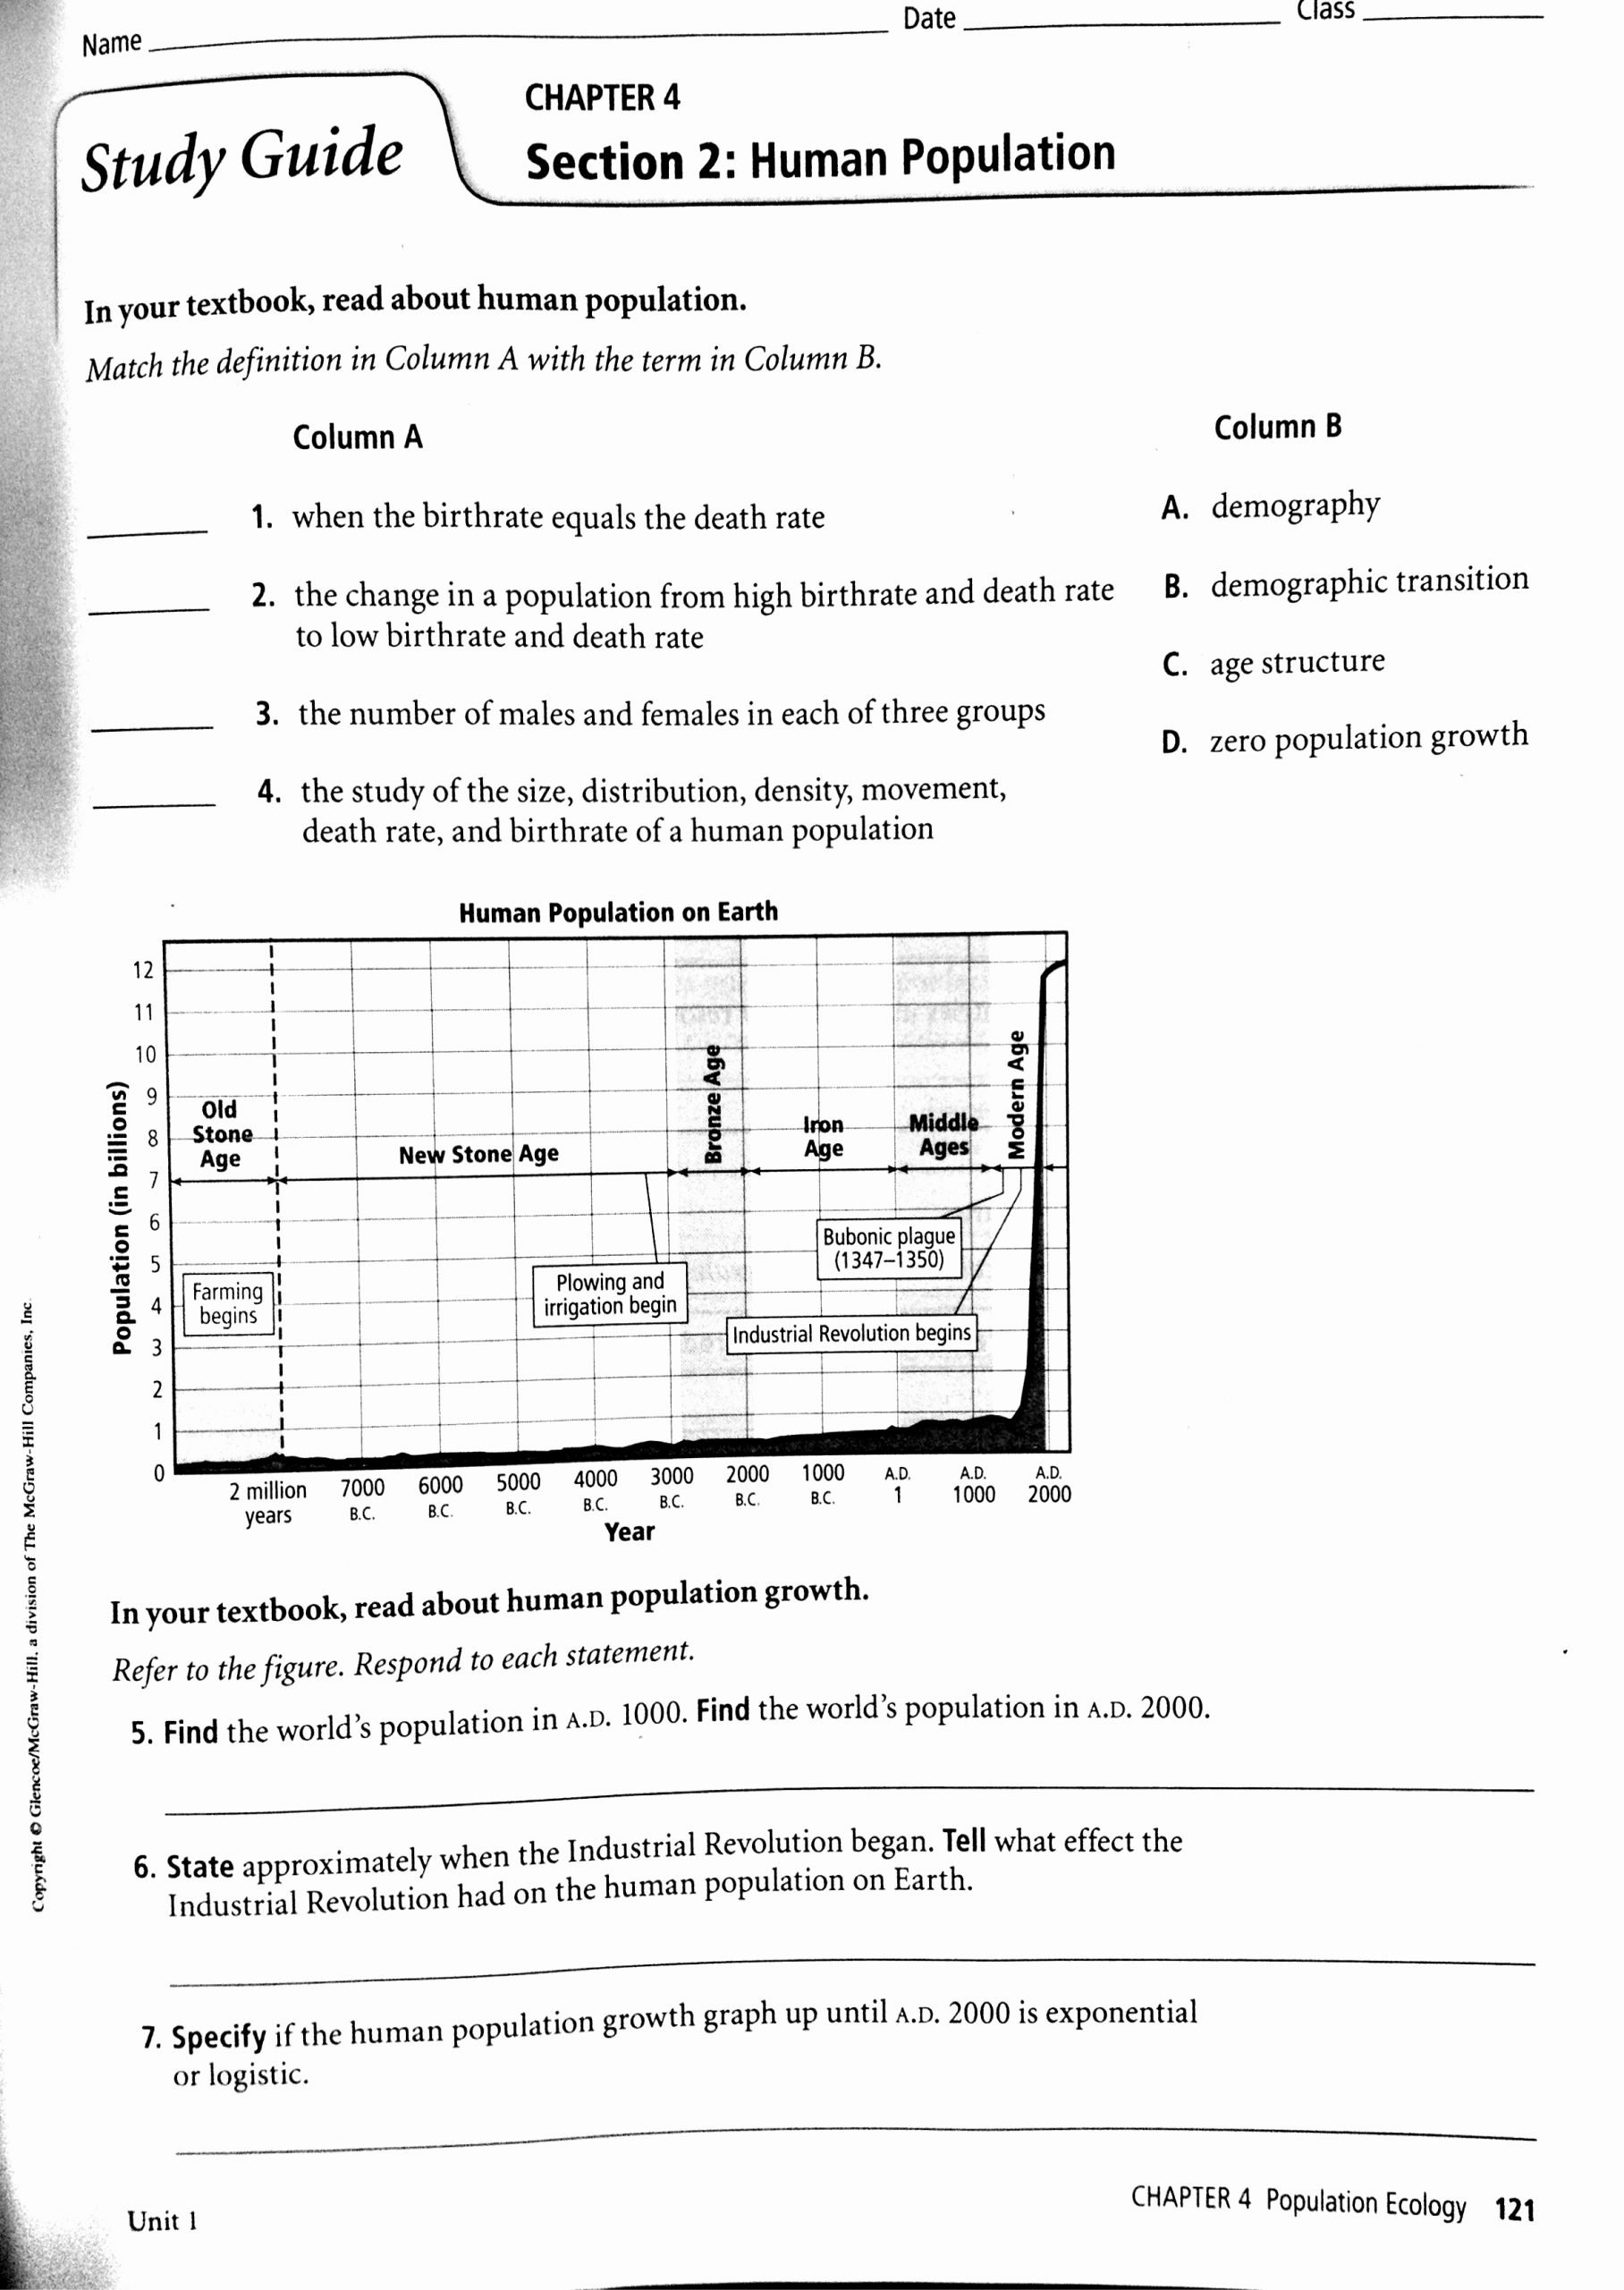 Human Population Growth Worksheet Answer Printable Population Structure Worksheet